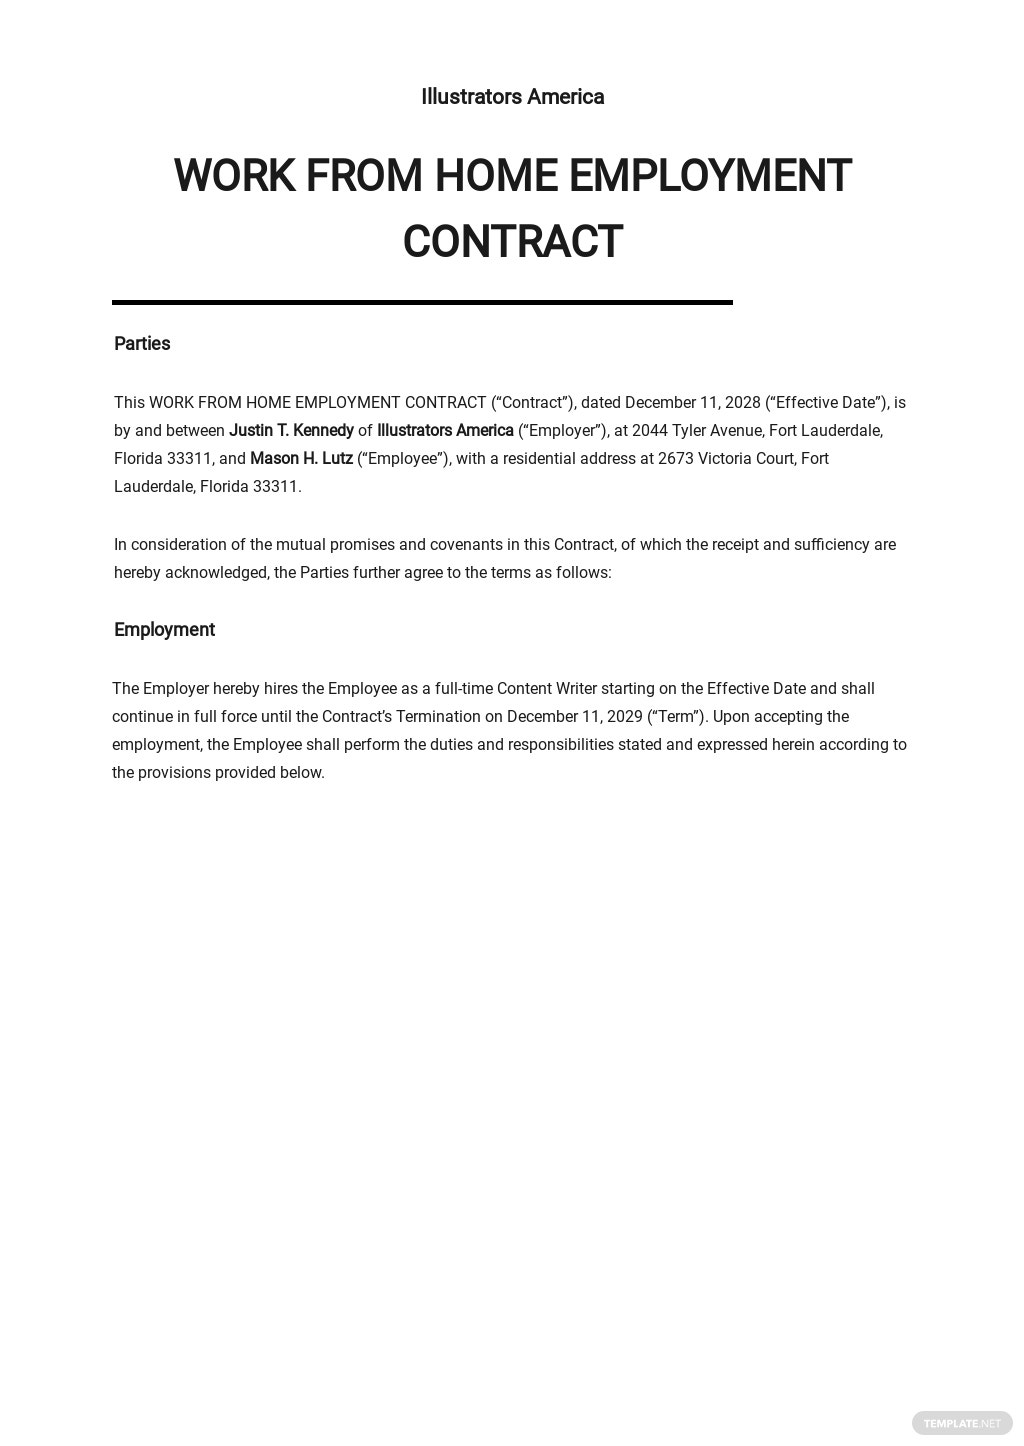 Work From Home Employment Contract Template